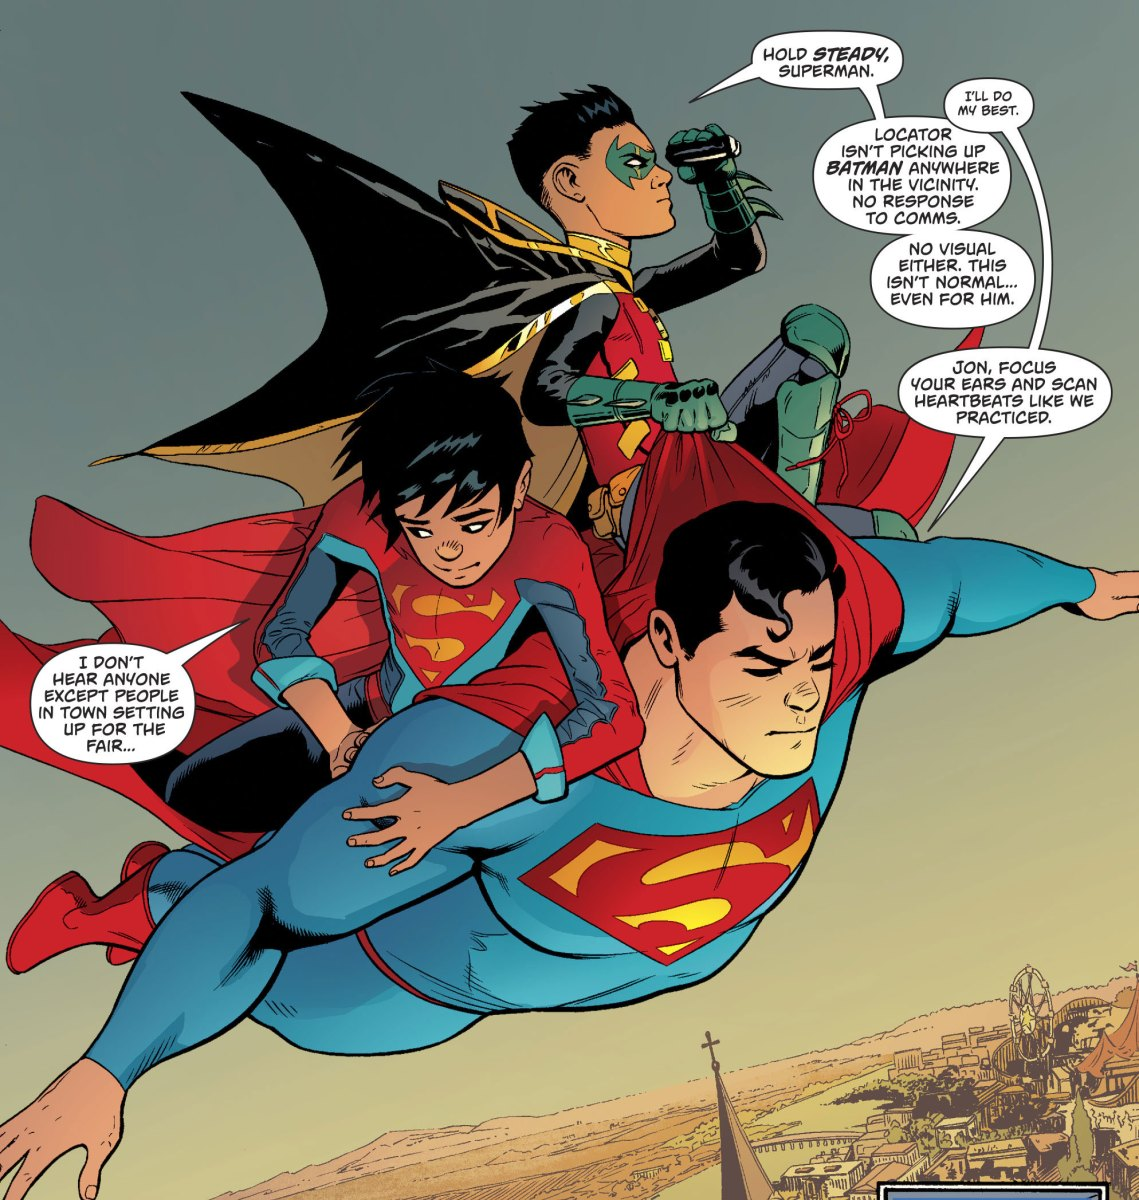 Superman, Superboy And Robin (Superman Vol. 4 #21)